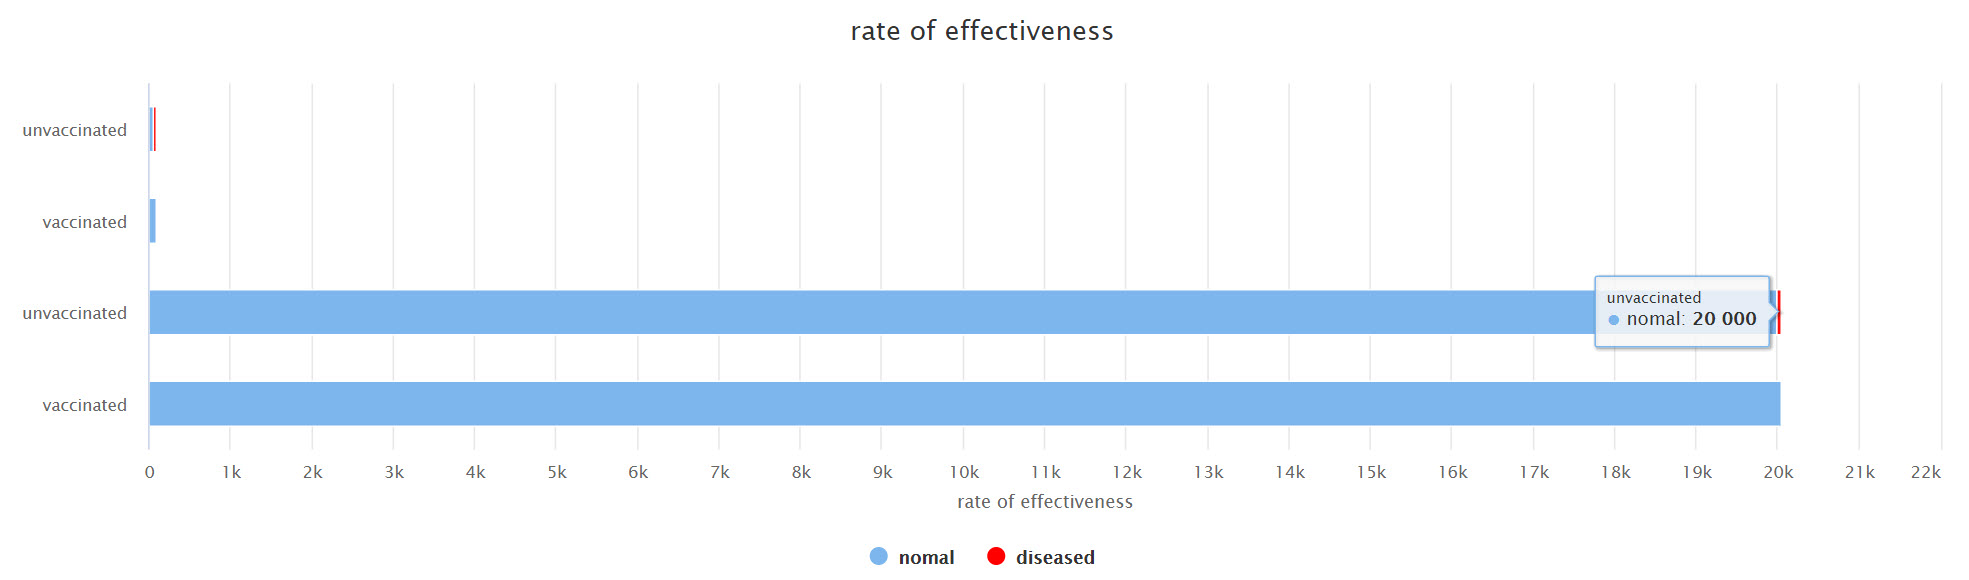 rate of effectiveness